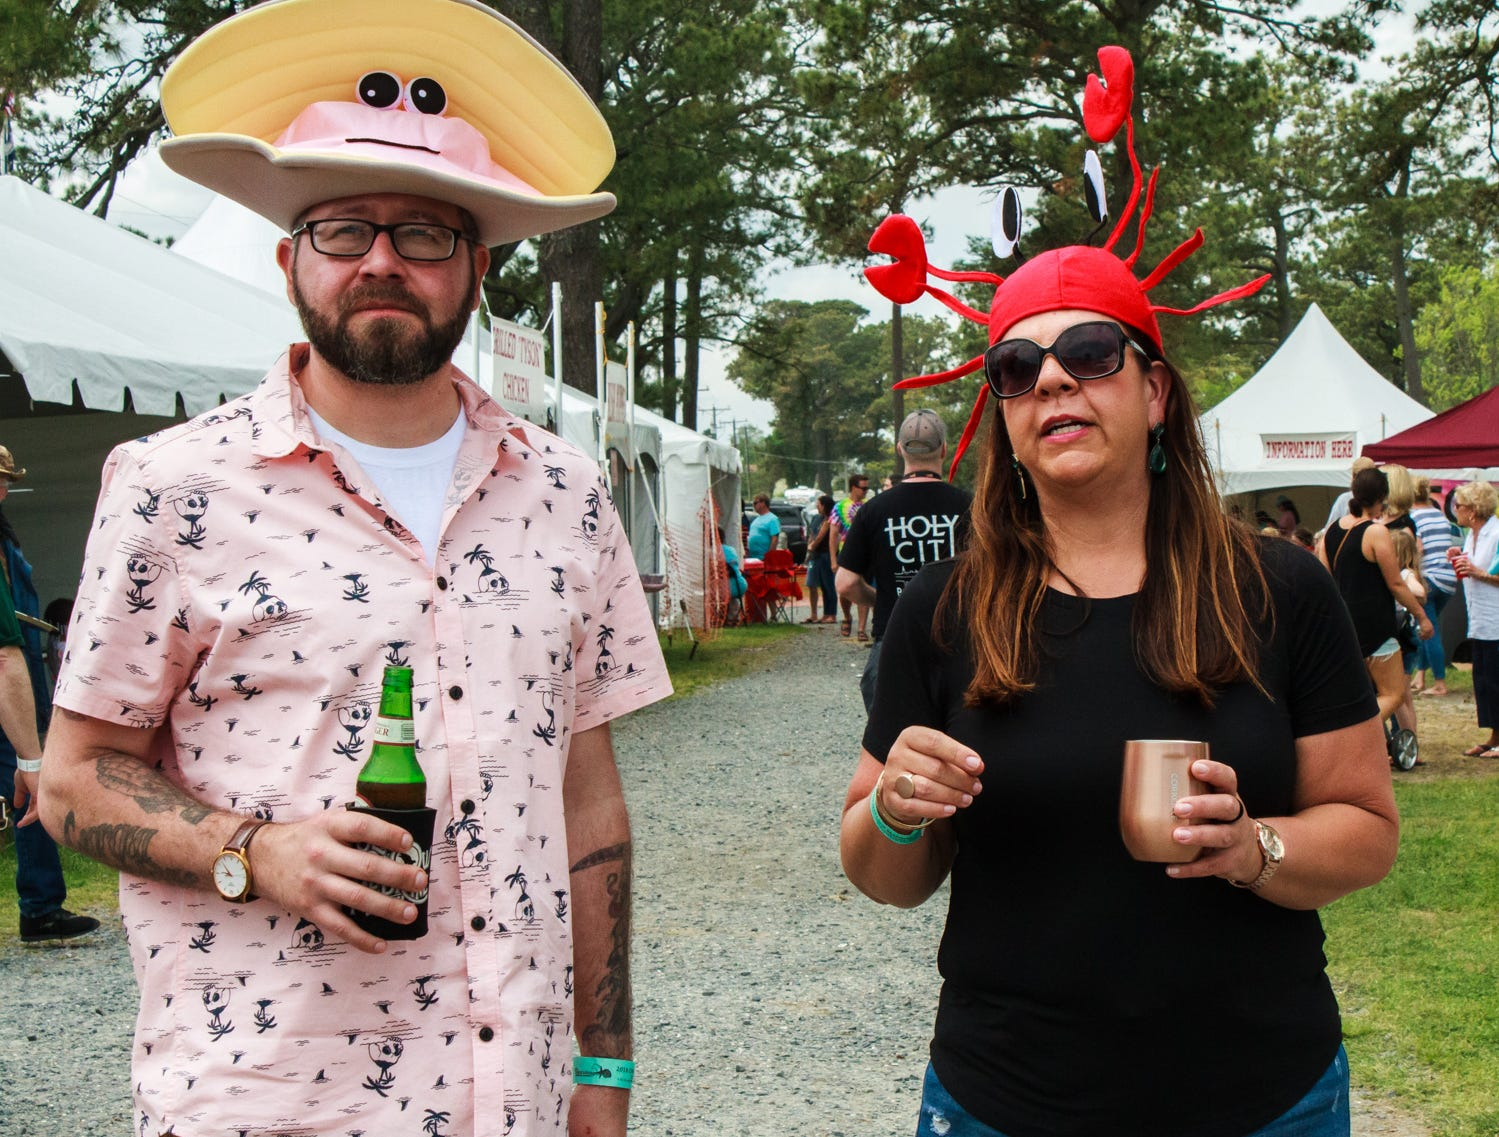 Chastity Moran and Stephen Lewis of Wilmington, DE stare down long lines ahead of them on Saturday, May 4, 2019 at the Chincoteague Seafood Festival in Chincoteague, VA.